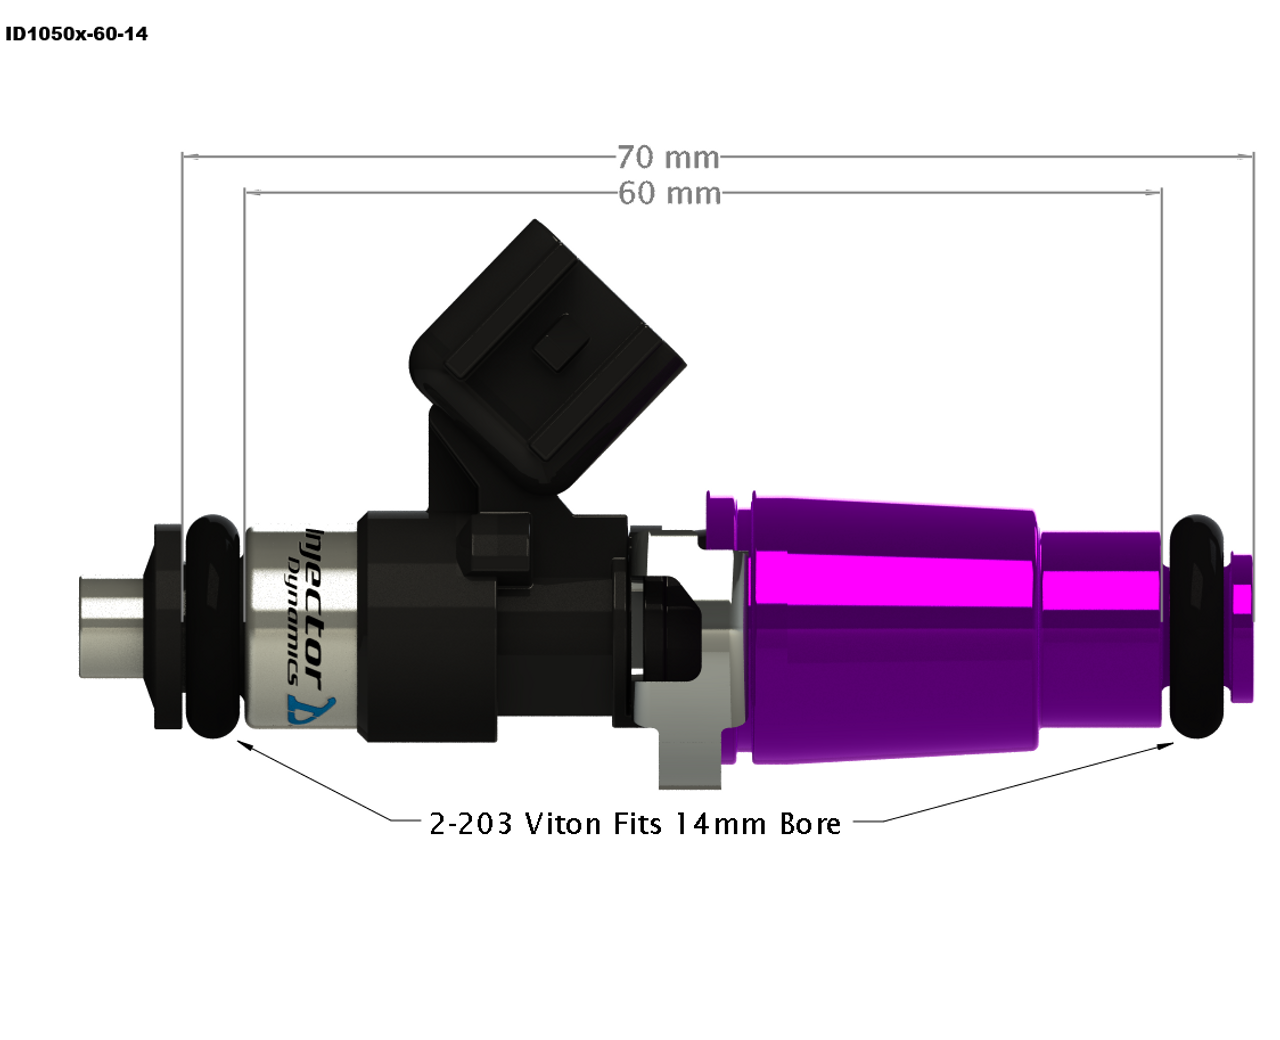 Injector Dynamics ID1050x Top Feed Fuel Injectors for Porsche 993/911 (none Turbo) (1050.60.14.14.6-911)